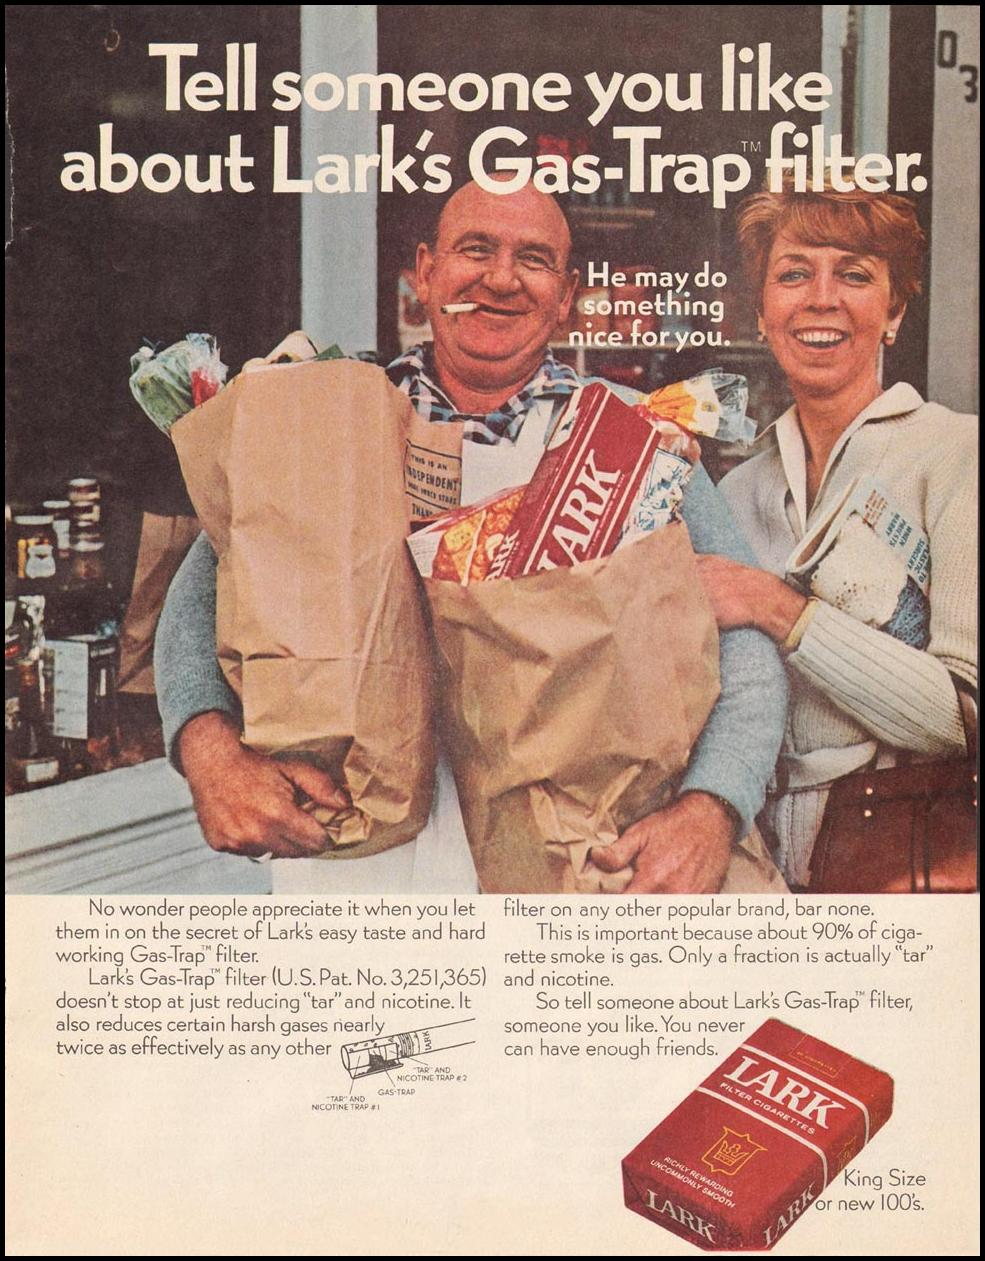 LARK CIGARETTES SATURDAY EVENING POST 01/25/1969 p. 51